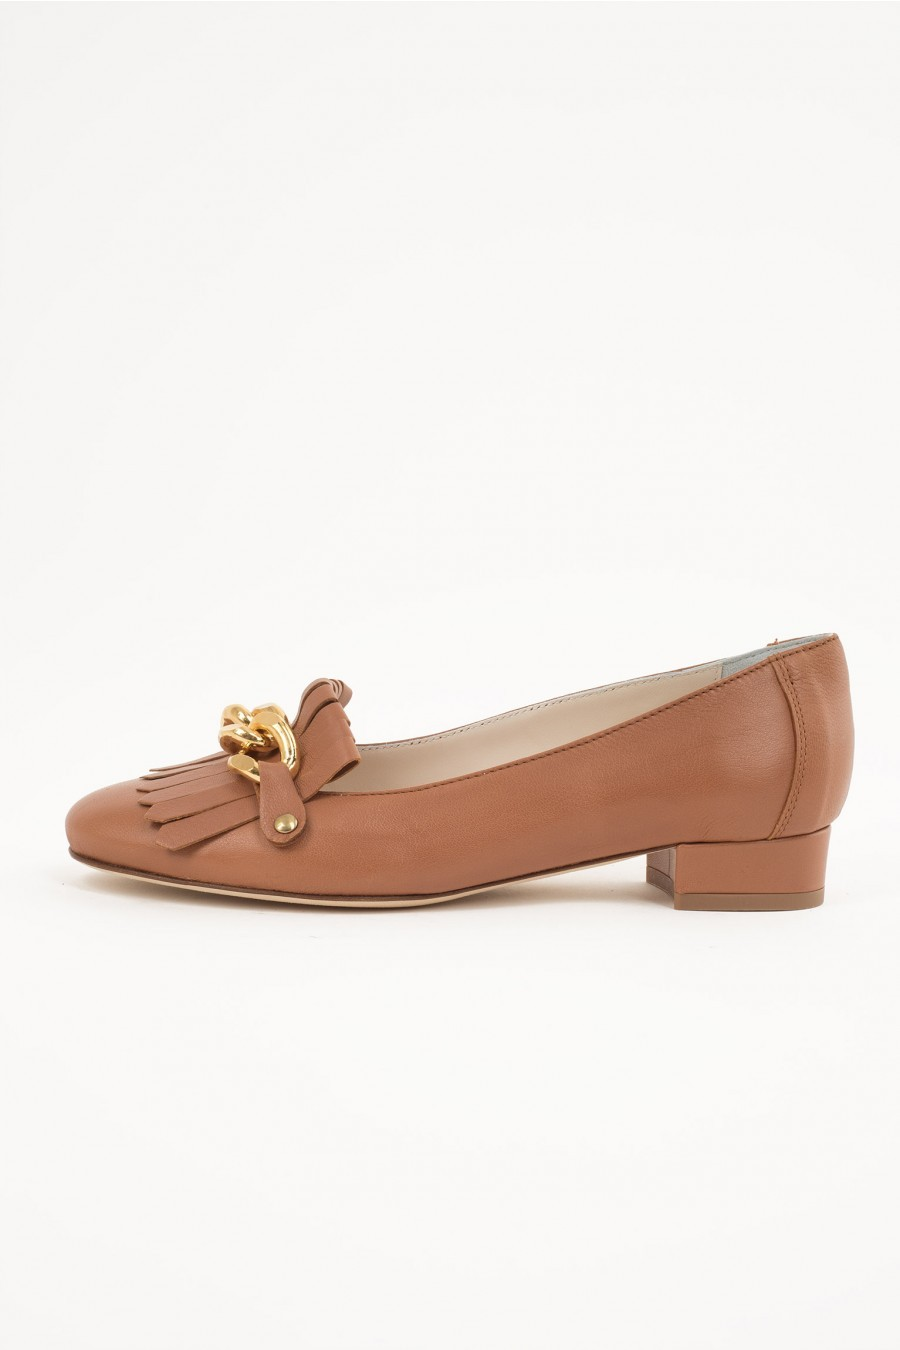 flat shoes gold detail